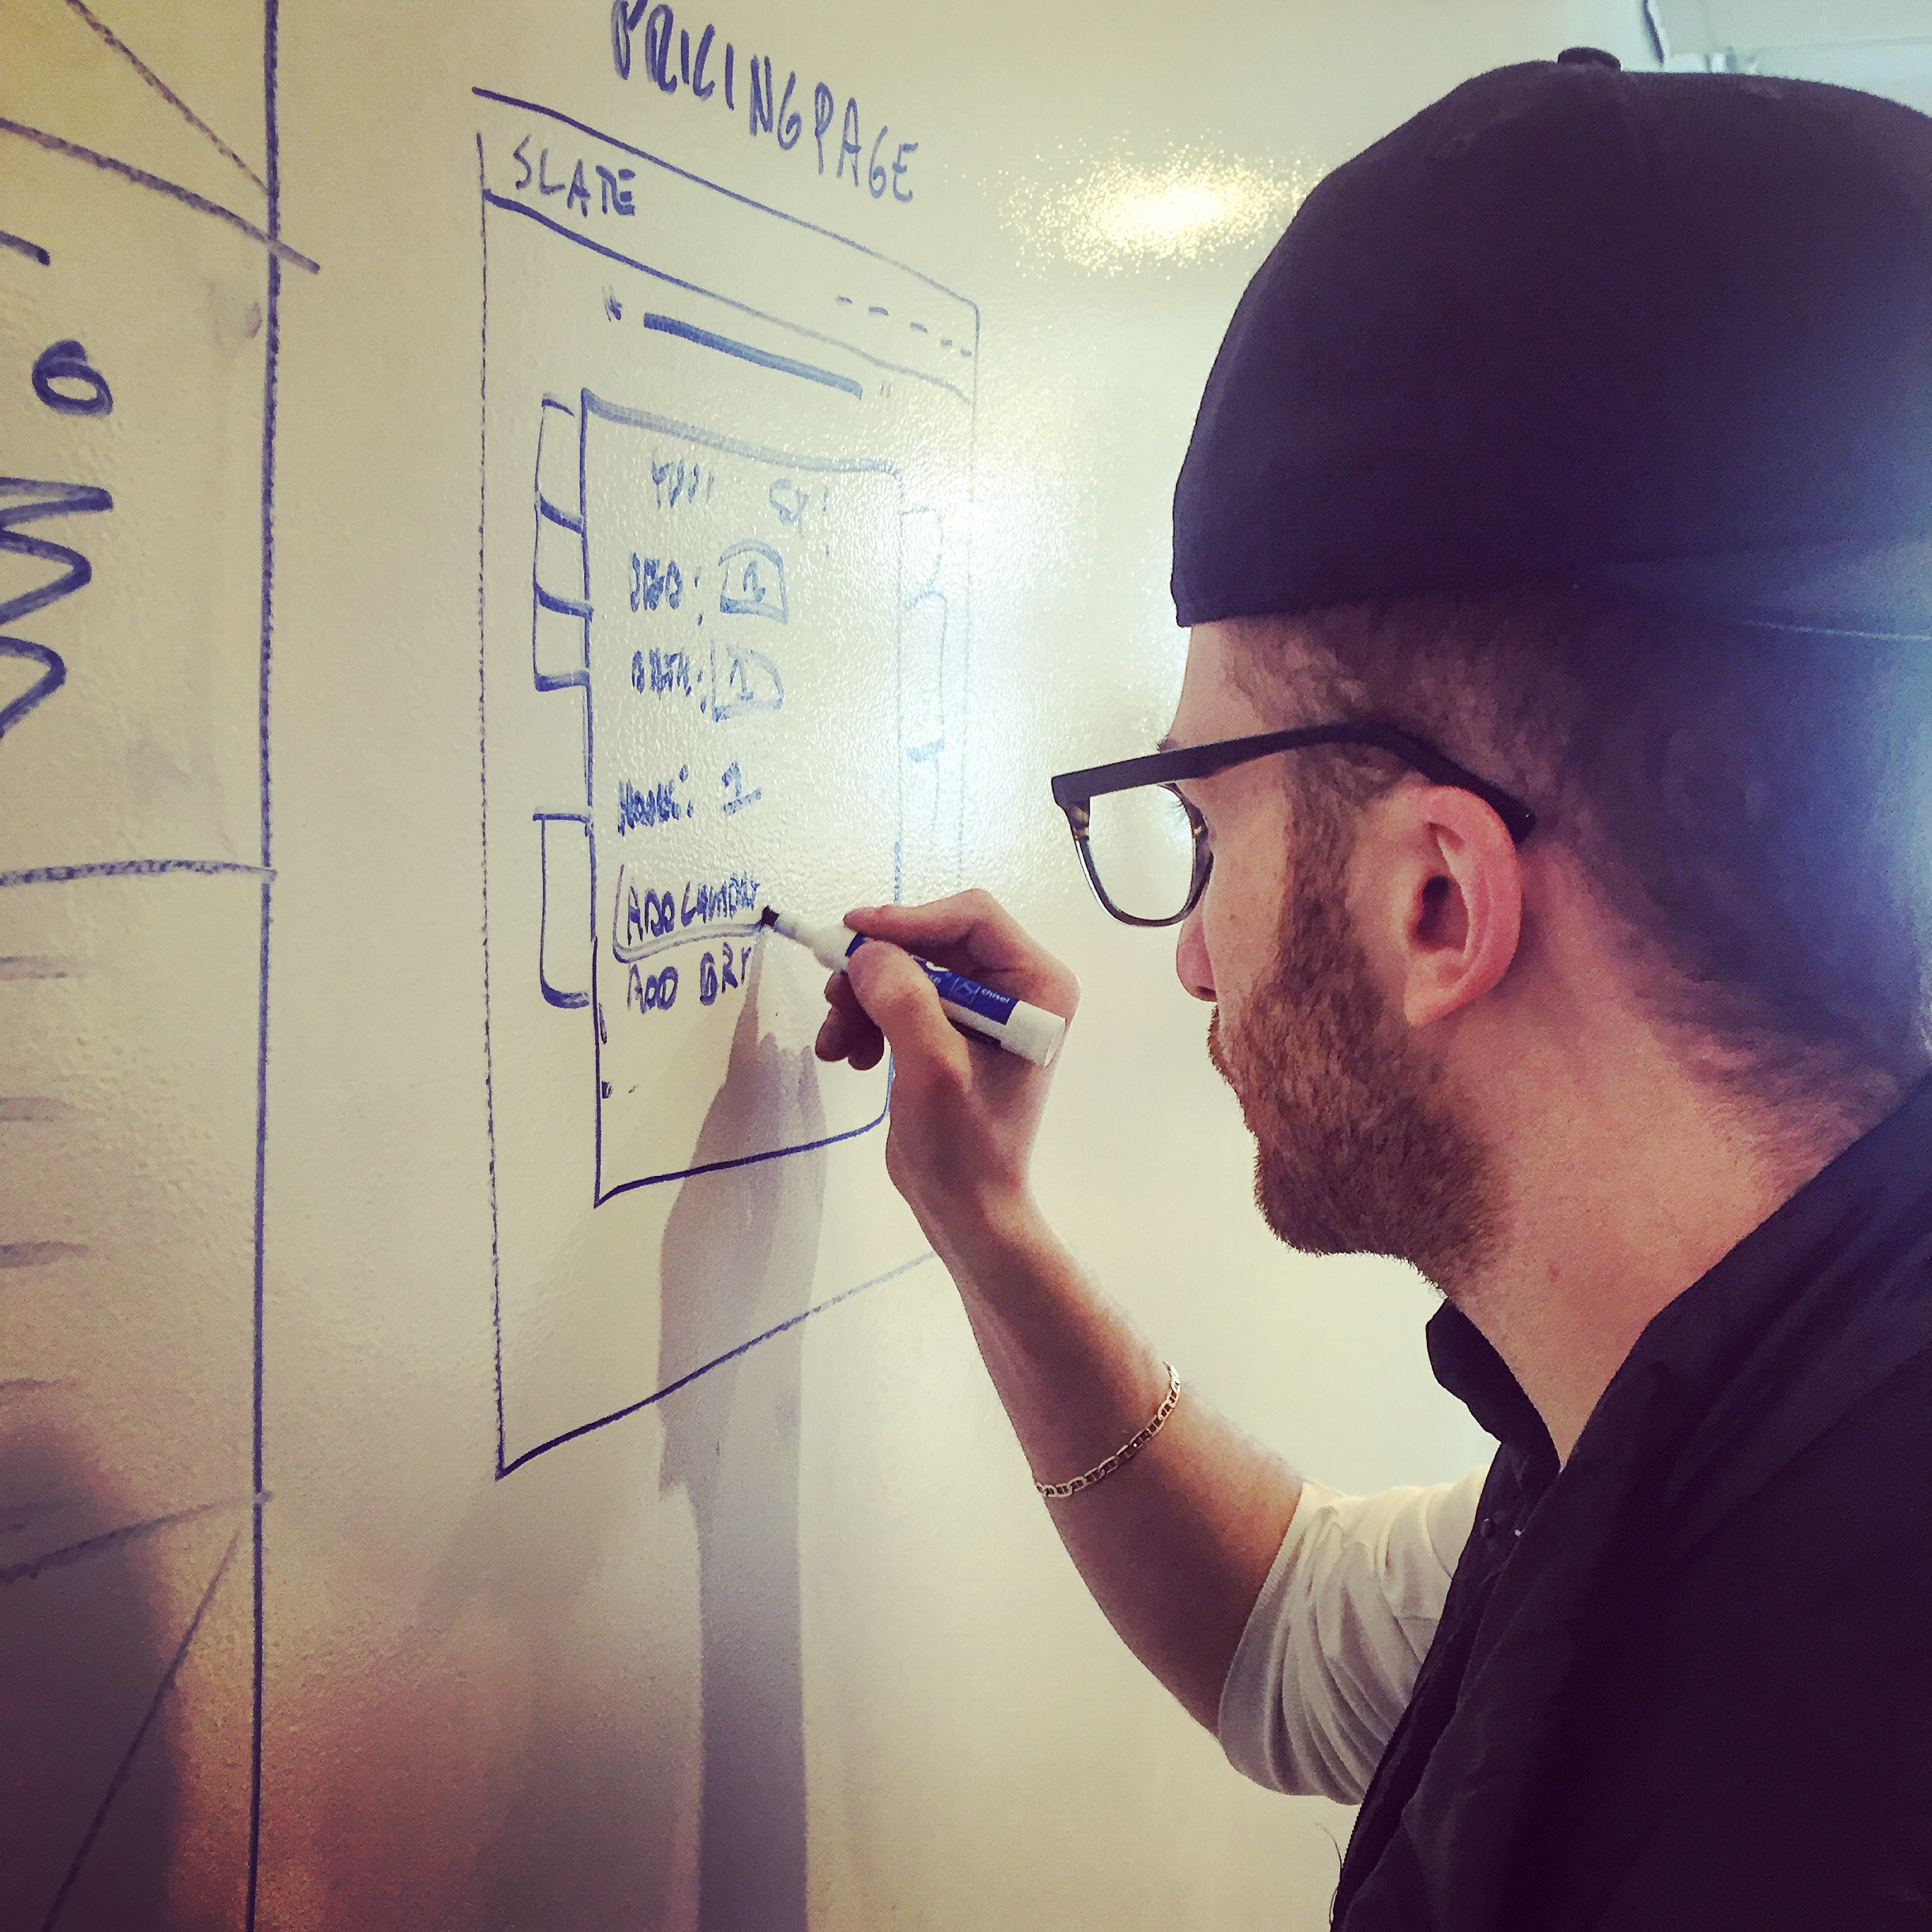 Anthony sketches some ideas during the exploratory design phase of the project.